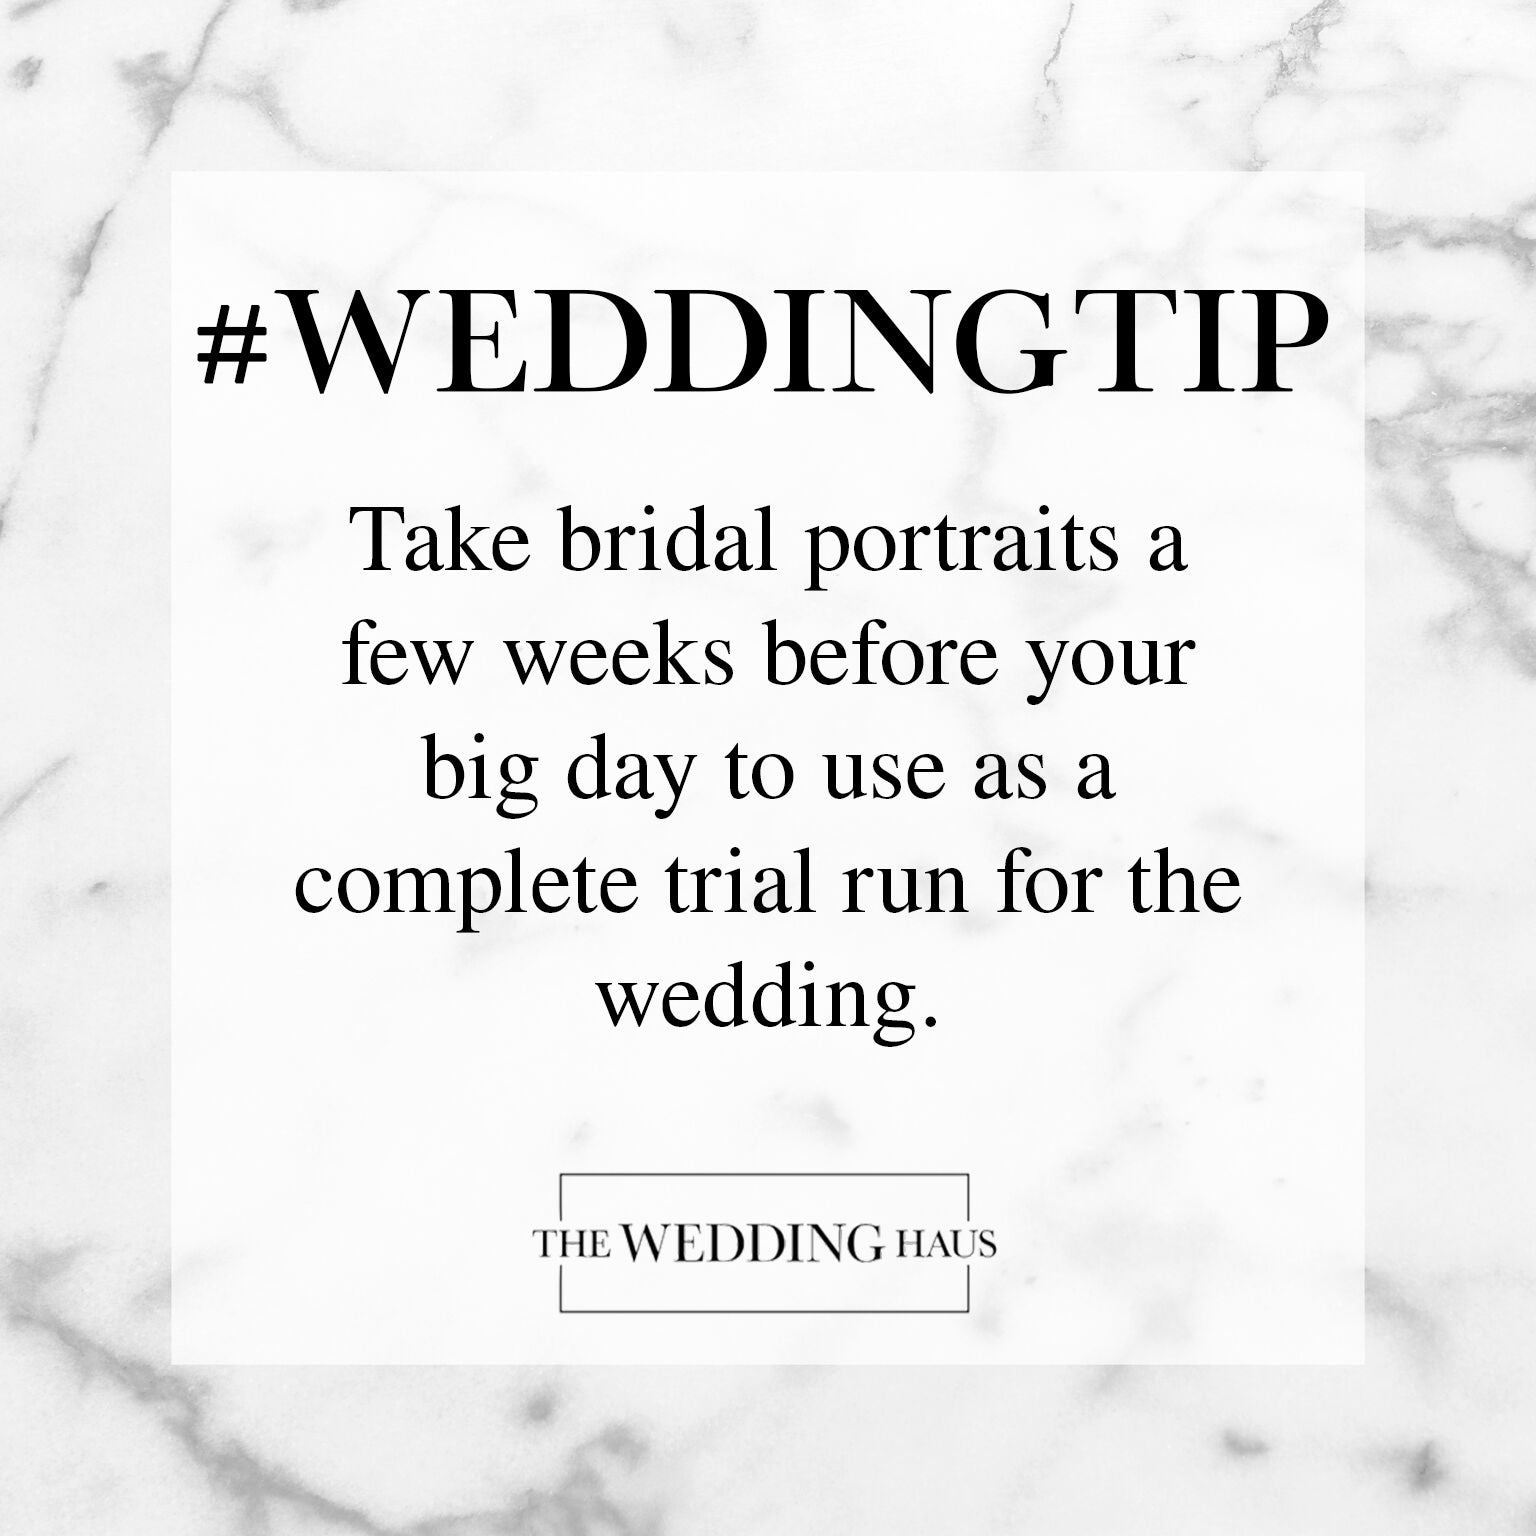 Bridal Portraits Wedding Tip from The Wedding Haus